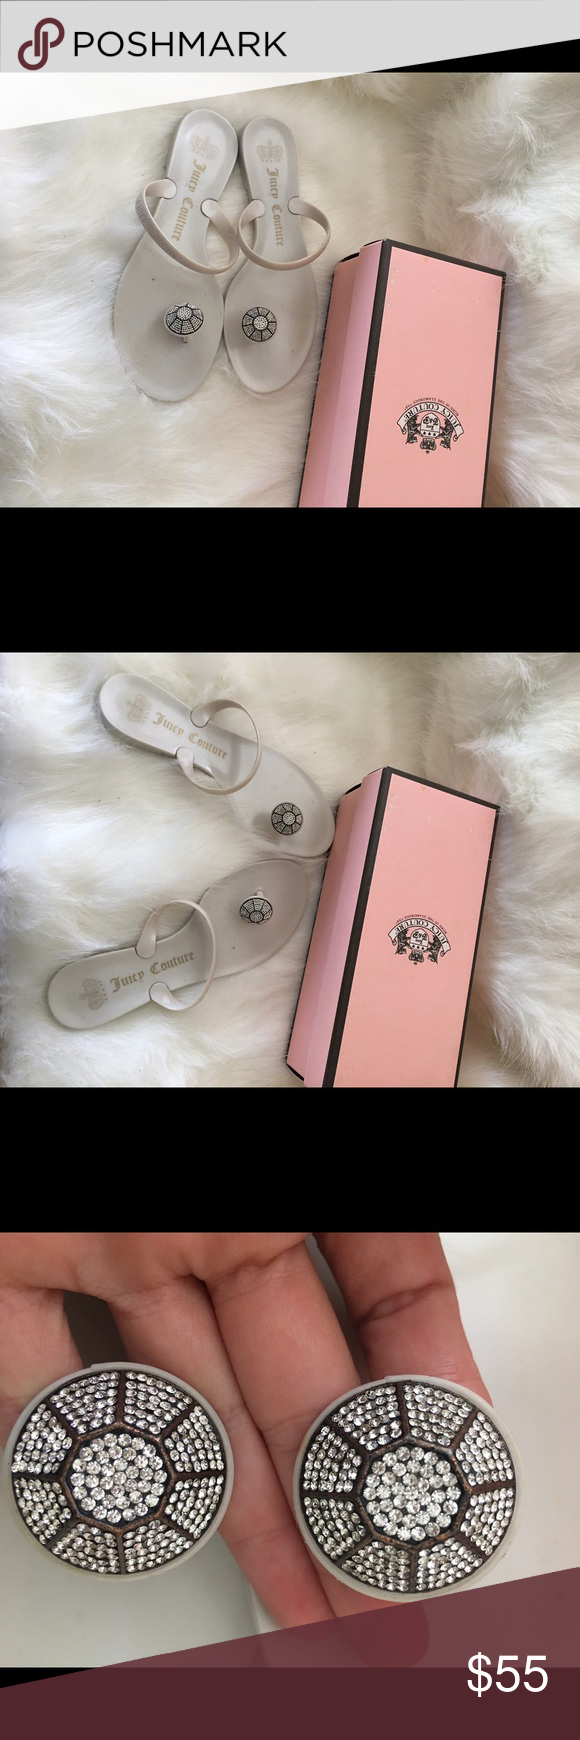 6ab9f9f6dd51 Juicy couture sandals size 8 Jeweled toe ring jelly sandals that will add a  touch of sparkle to your next beach ensemble comes with the box Juicy  Couture ...